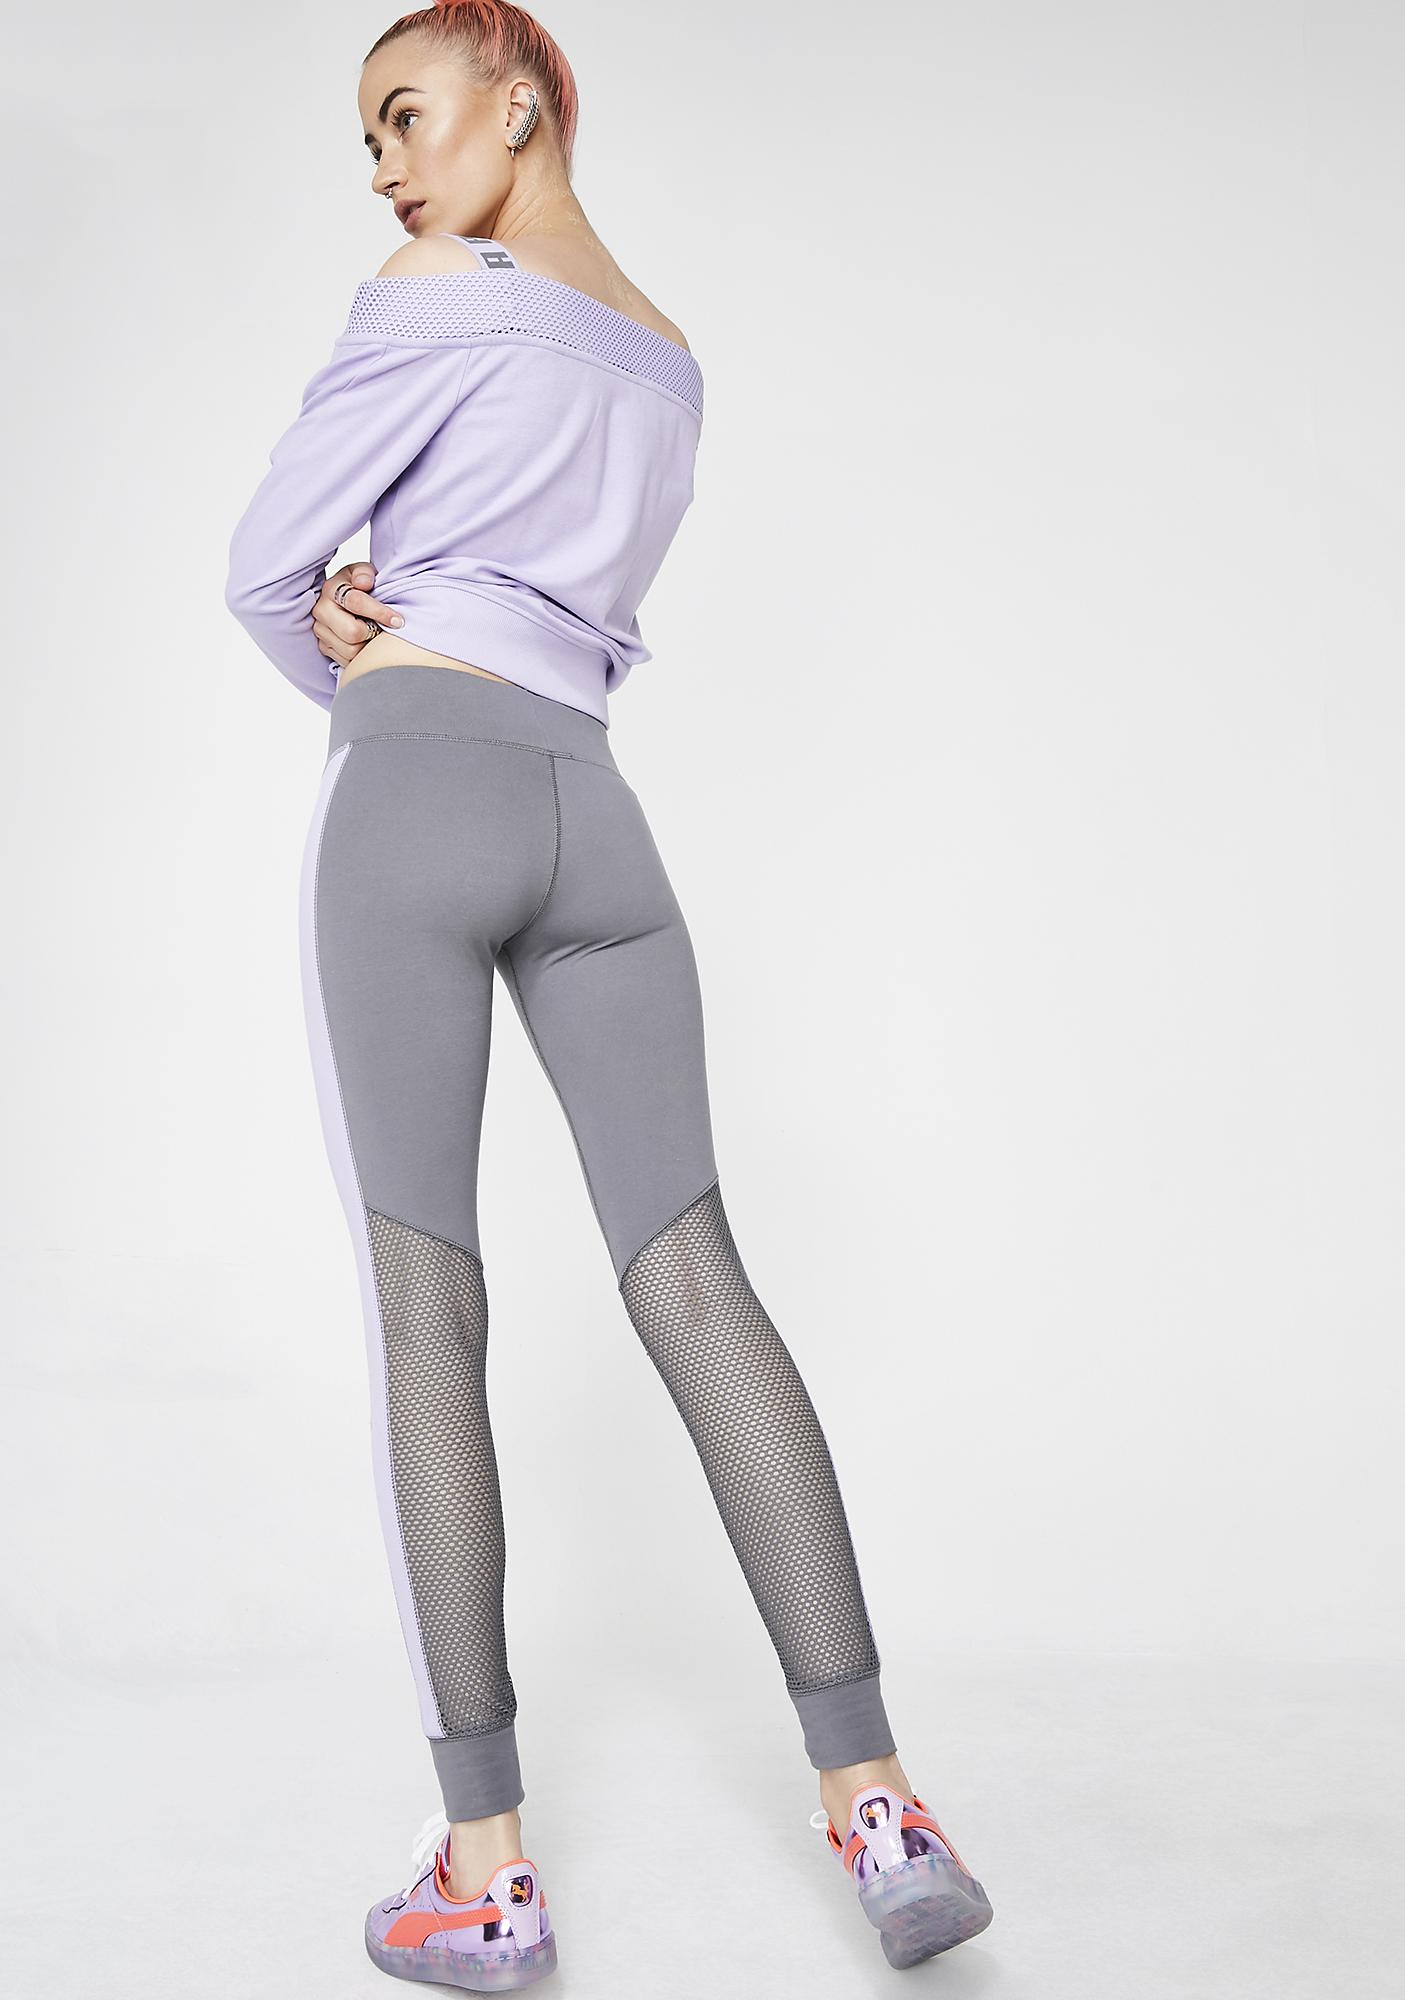 PUMA Invisible T7 Leggings